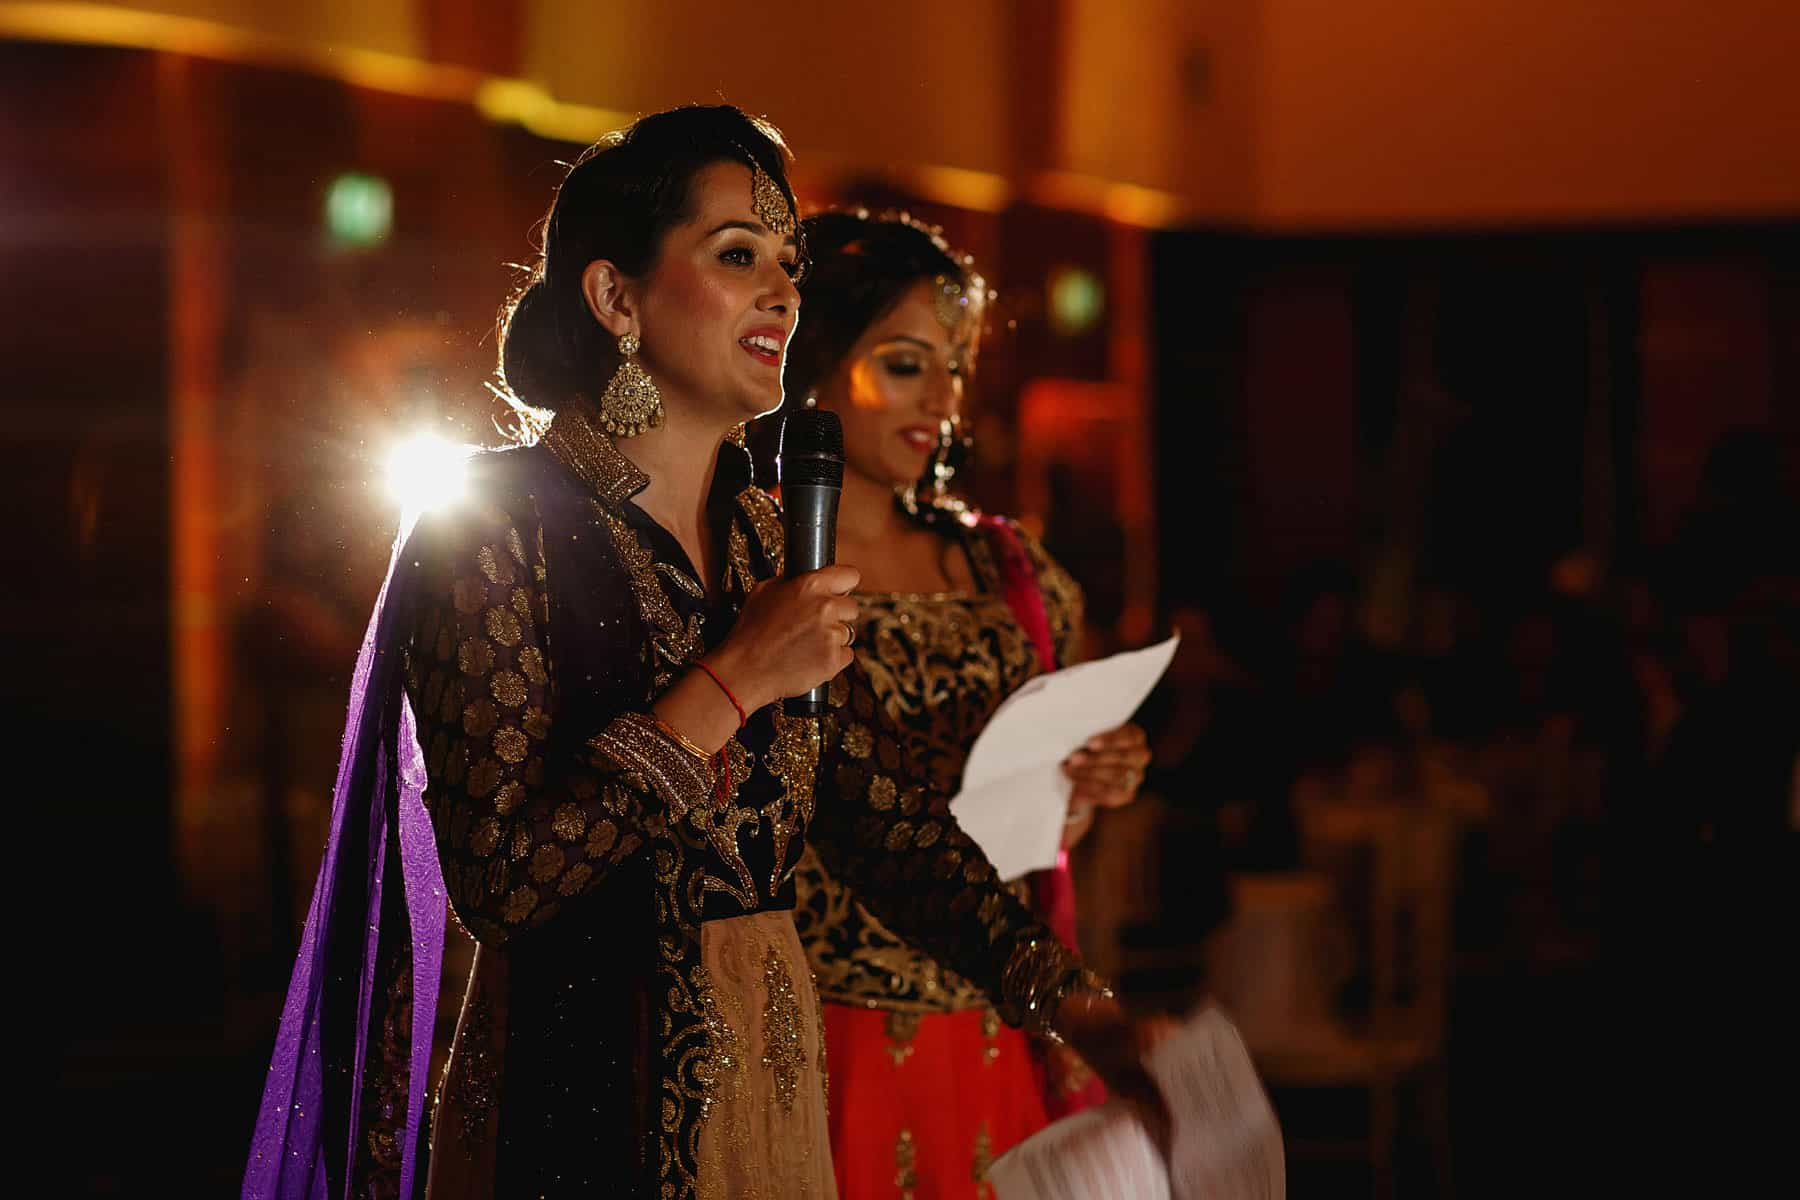 sikh wedding novotel london